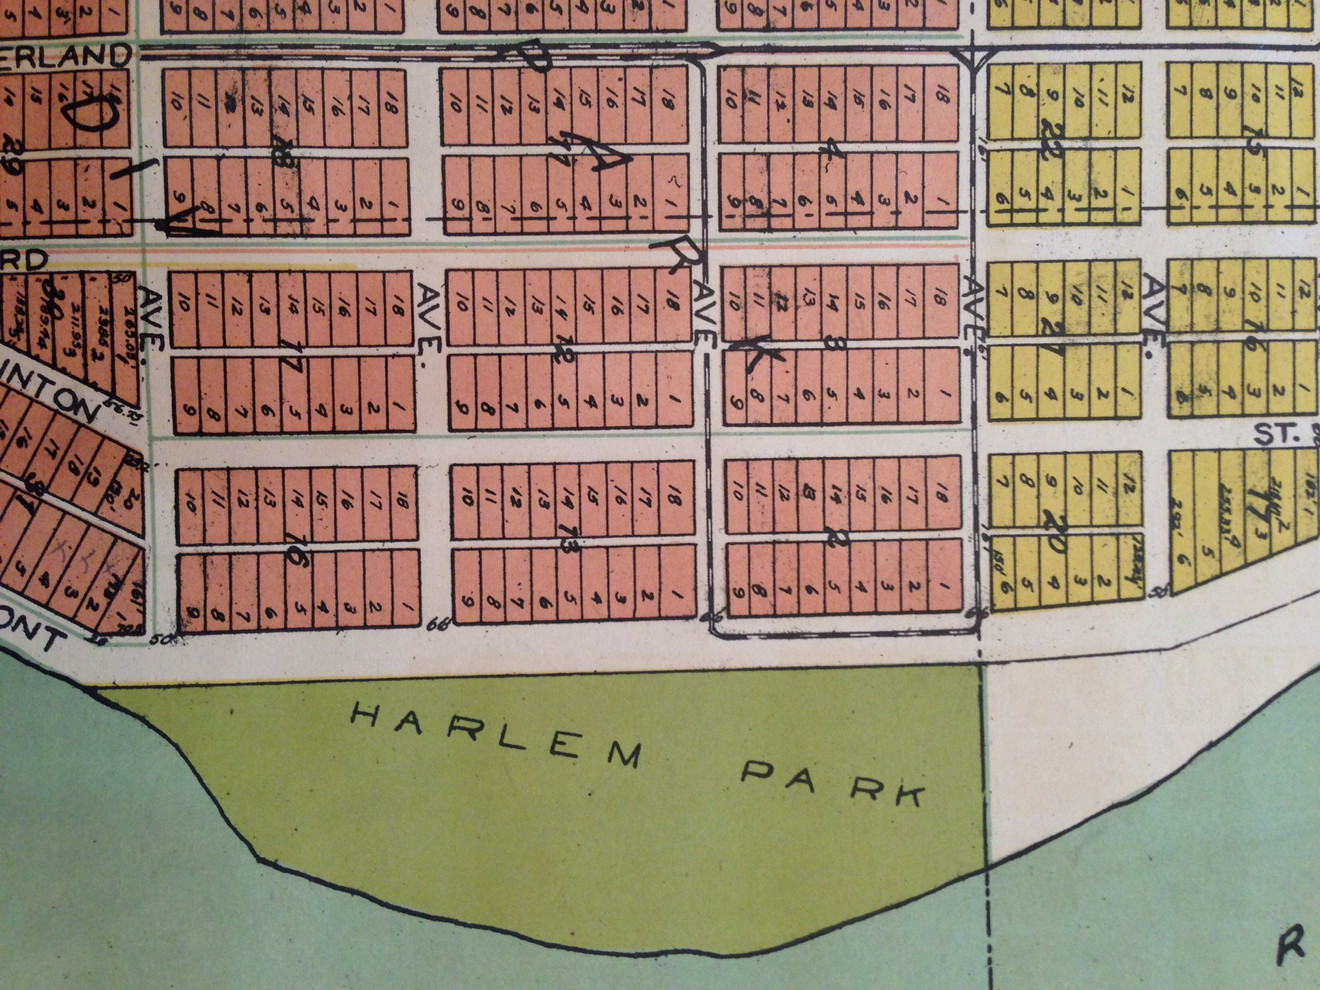 Plat map with Harlem Park and Edgewater